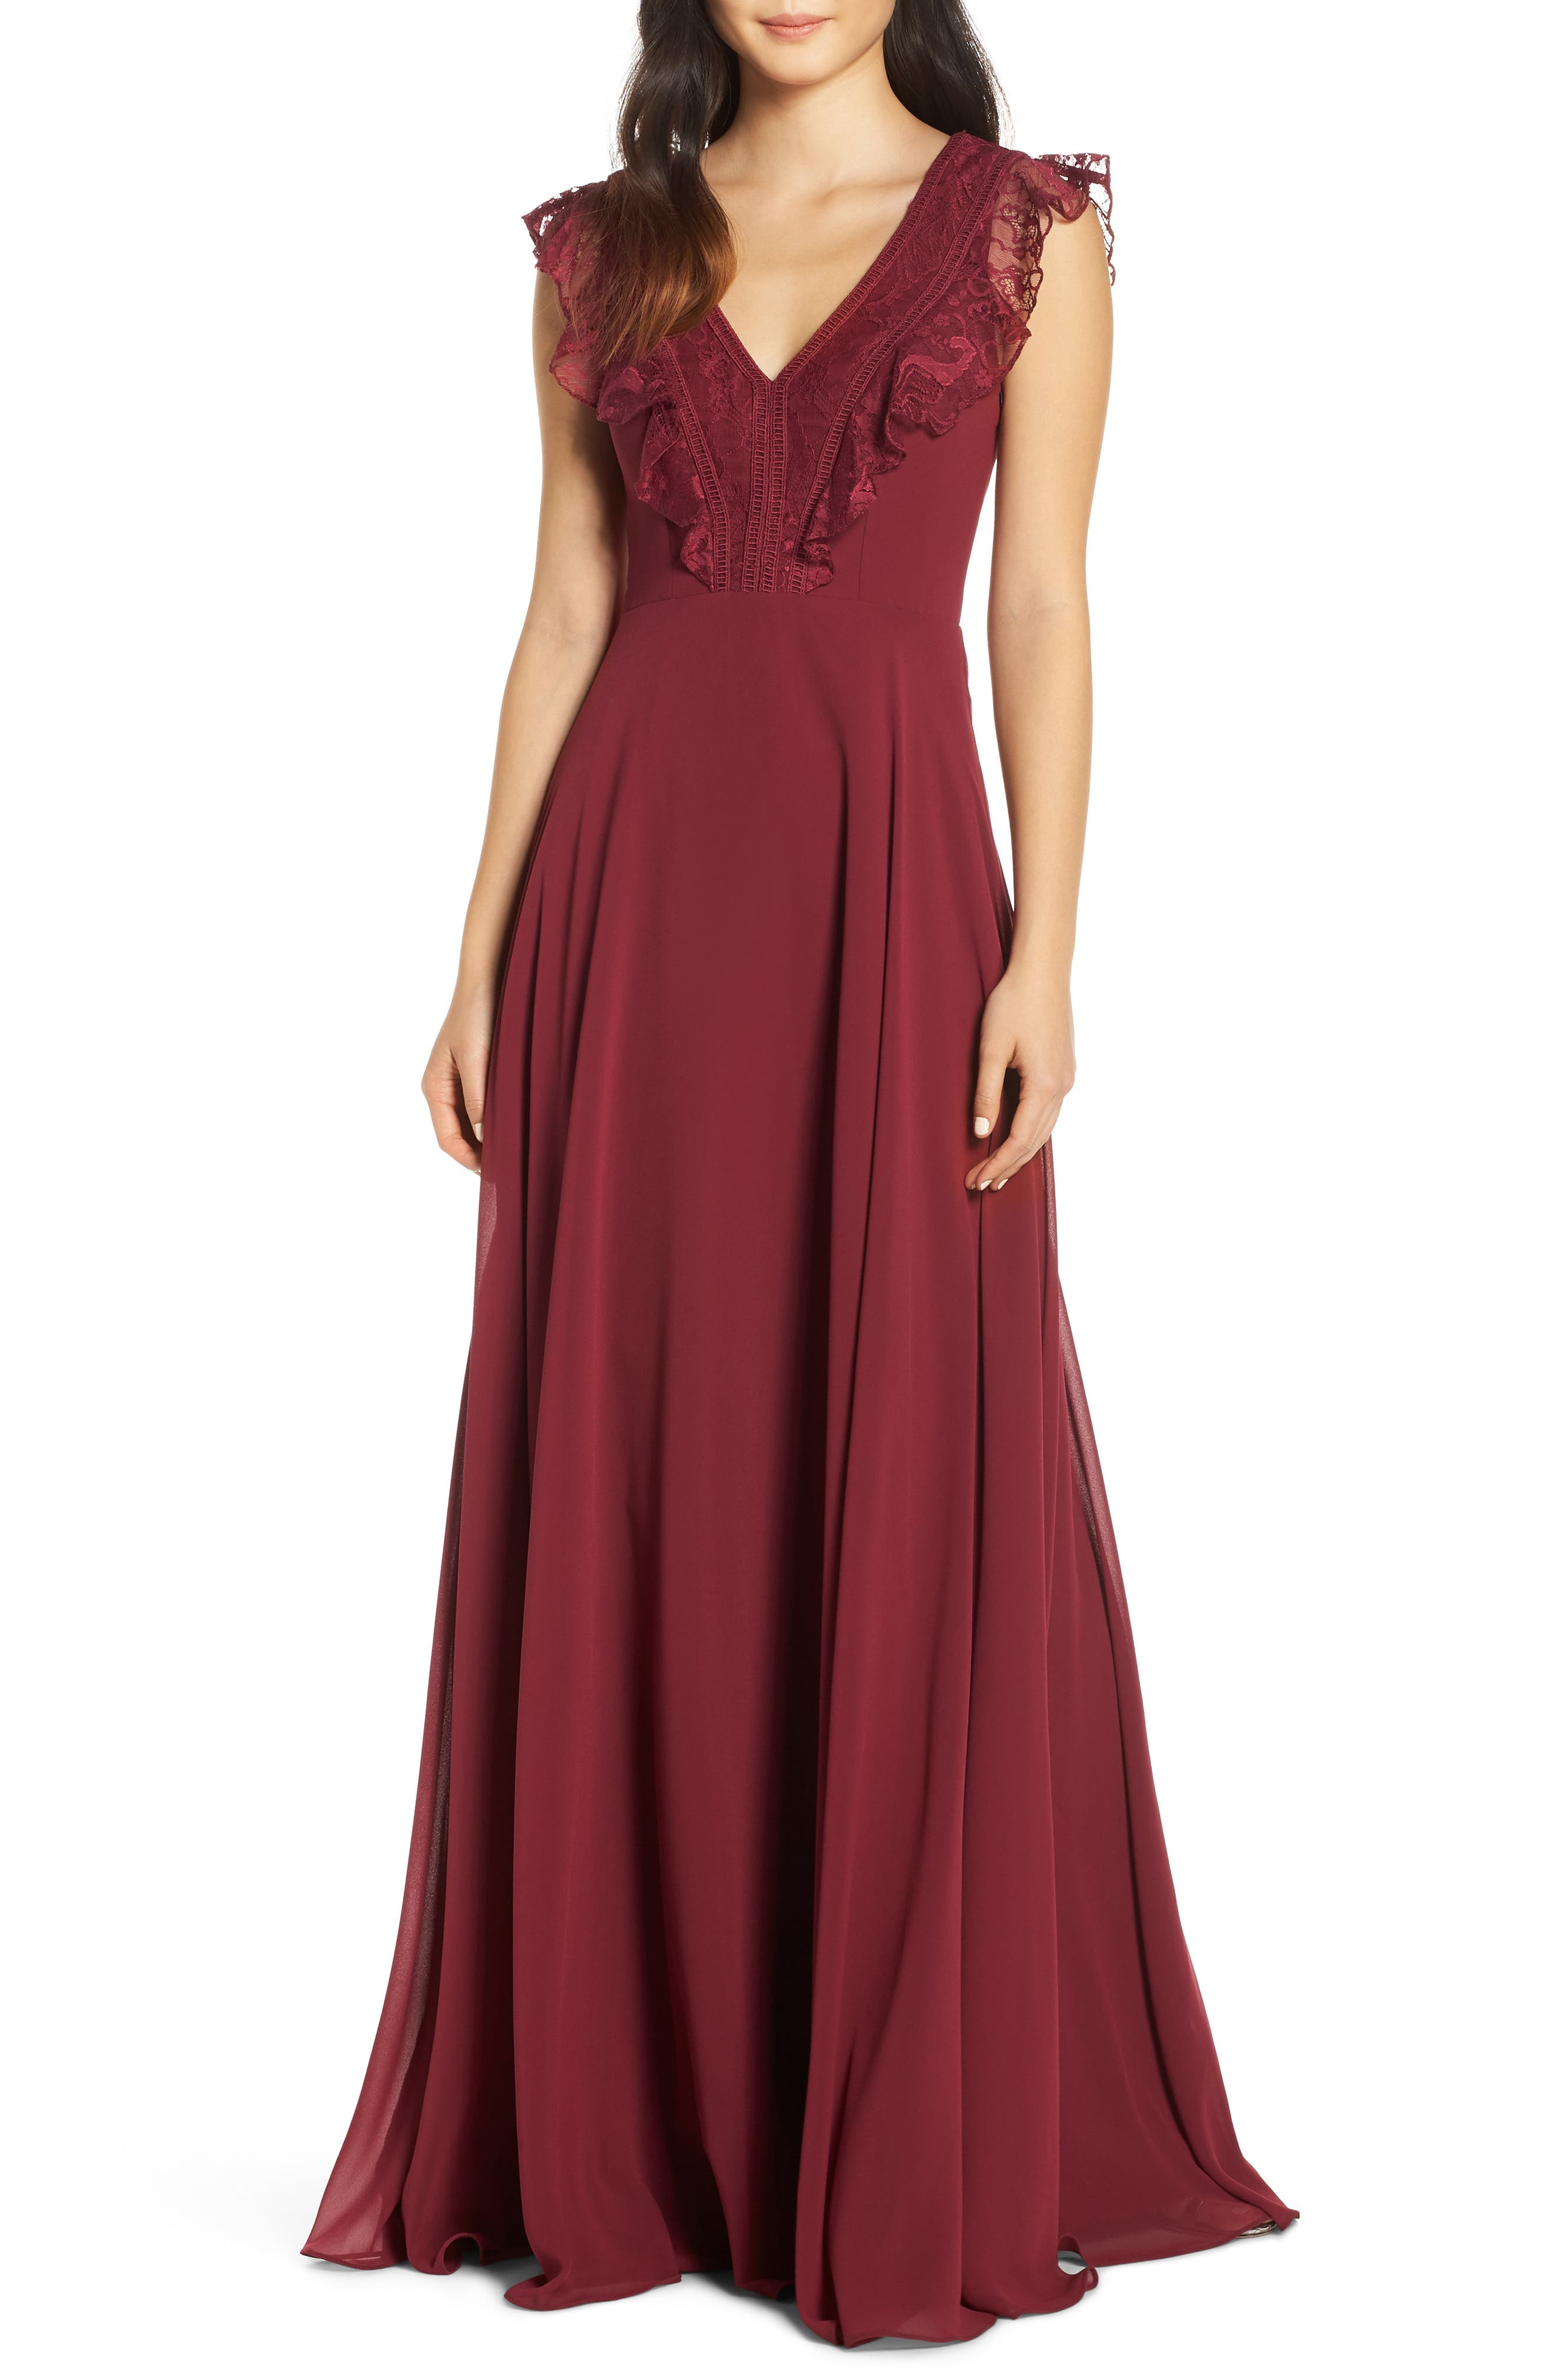 Hayley Paige Occasions Lace V-Neck Chiffon Evening Dress, Burgundy